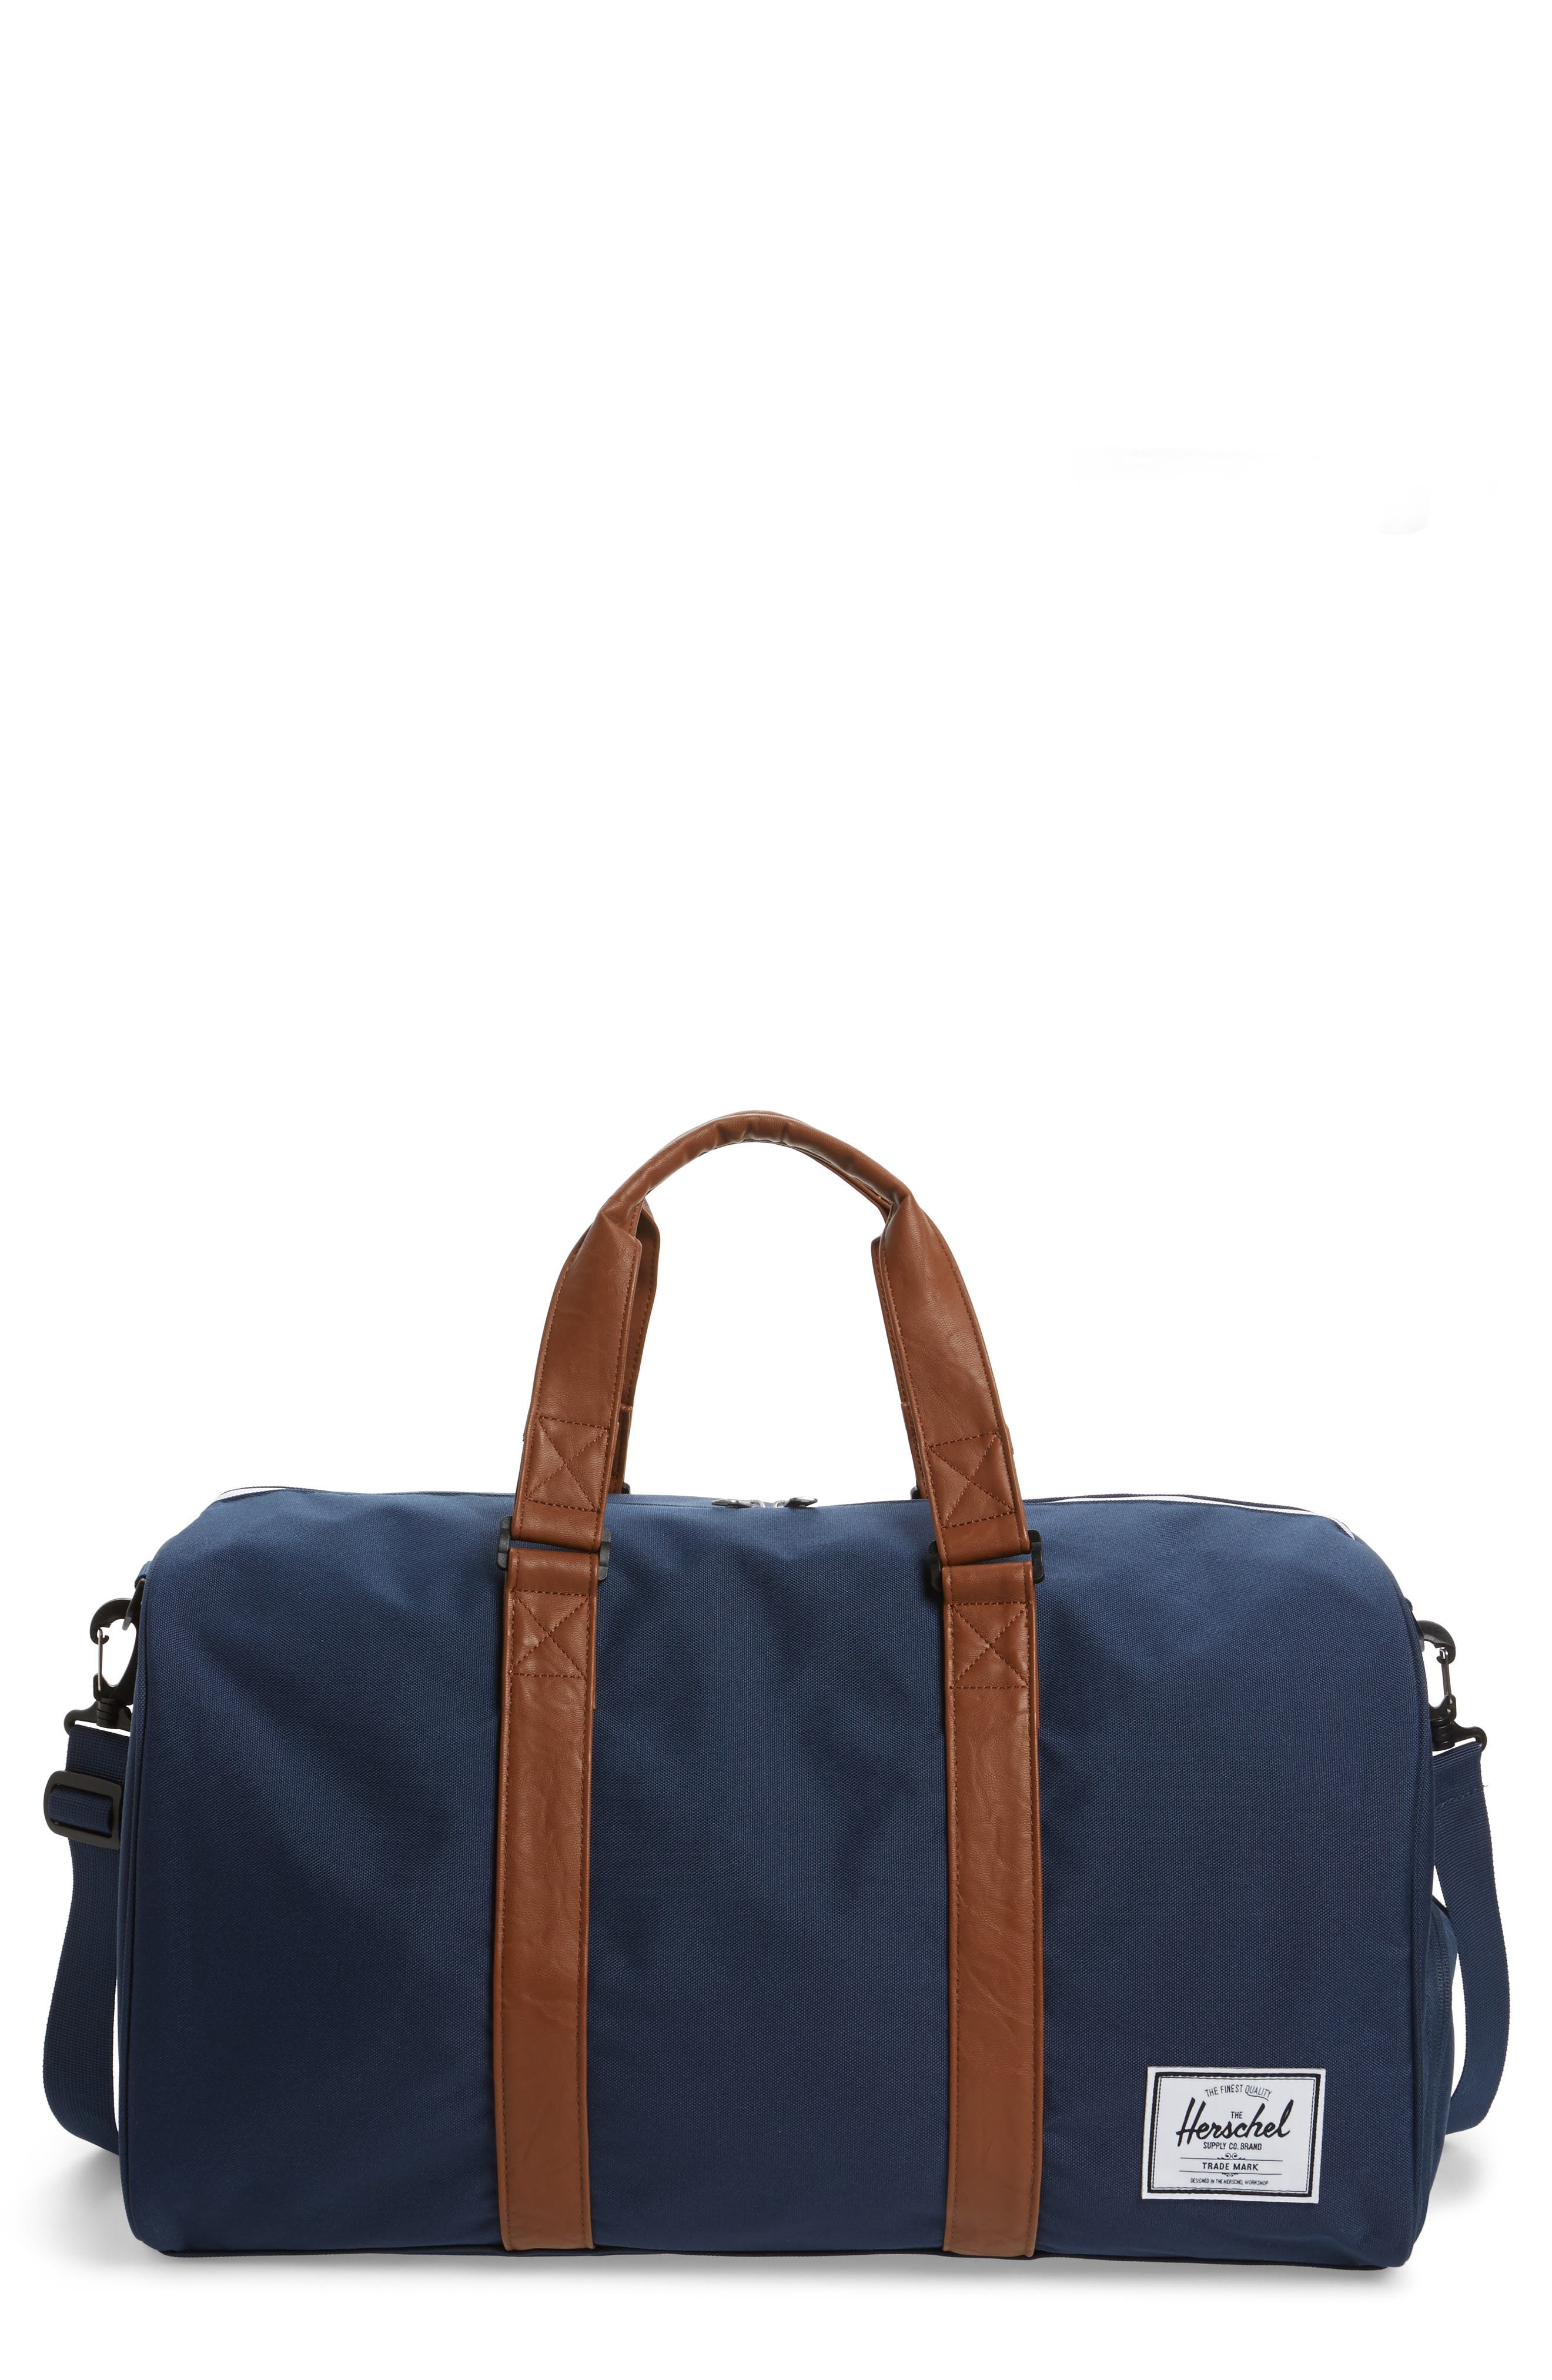 'Novel' Duffel Bag - Blue in Navy/ Tan